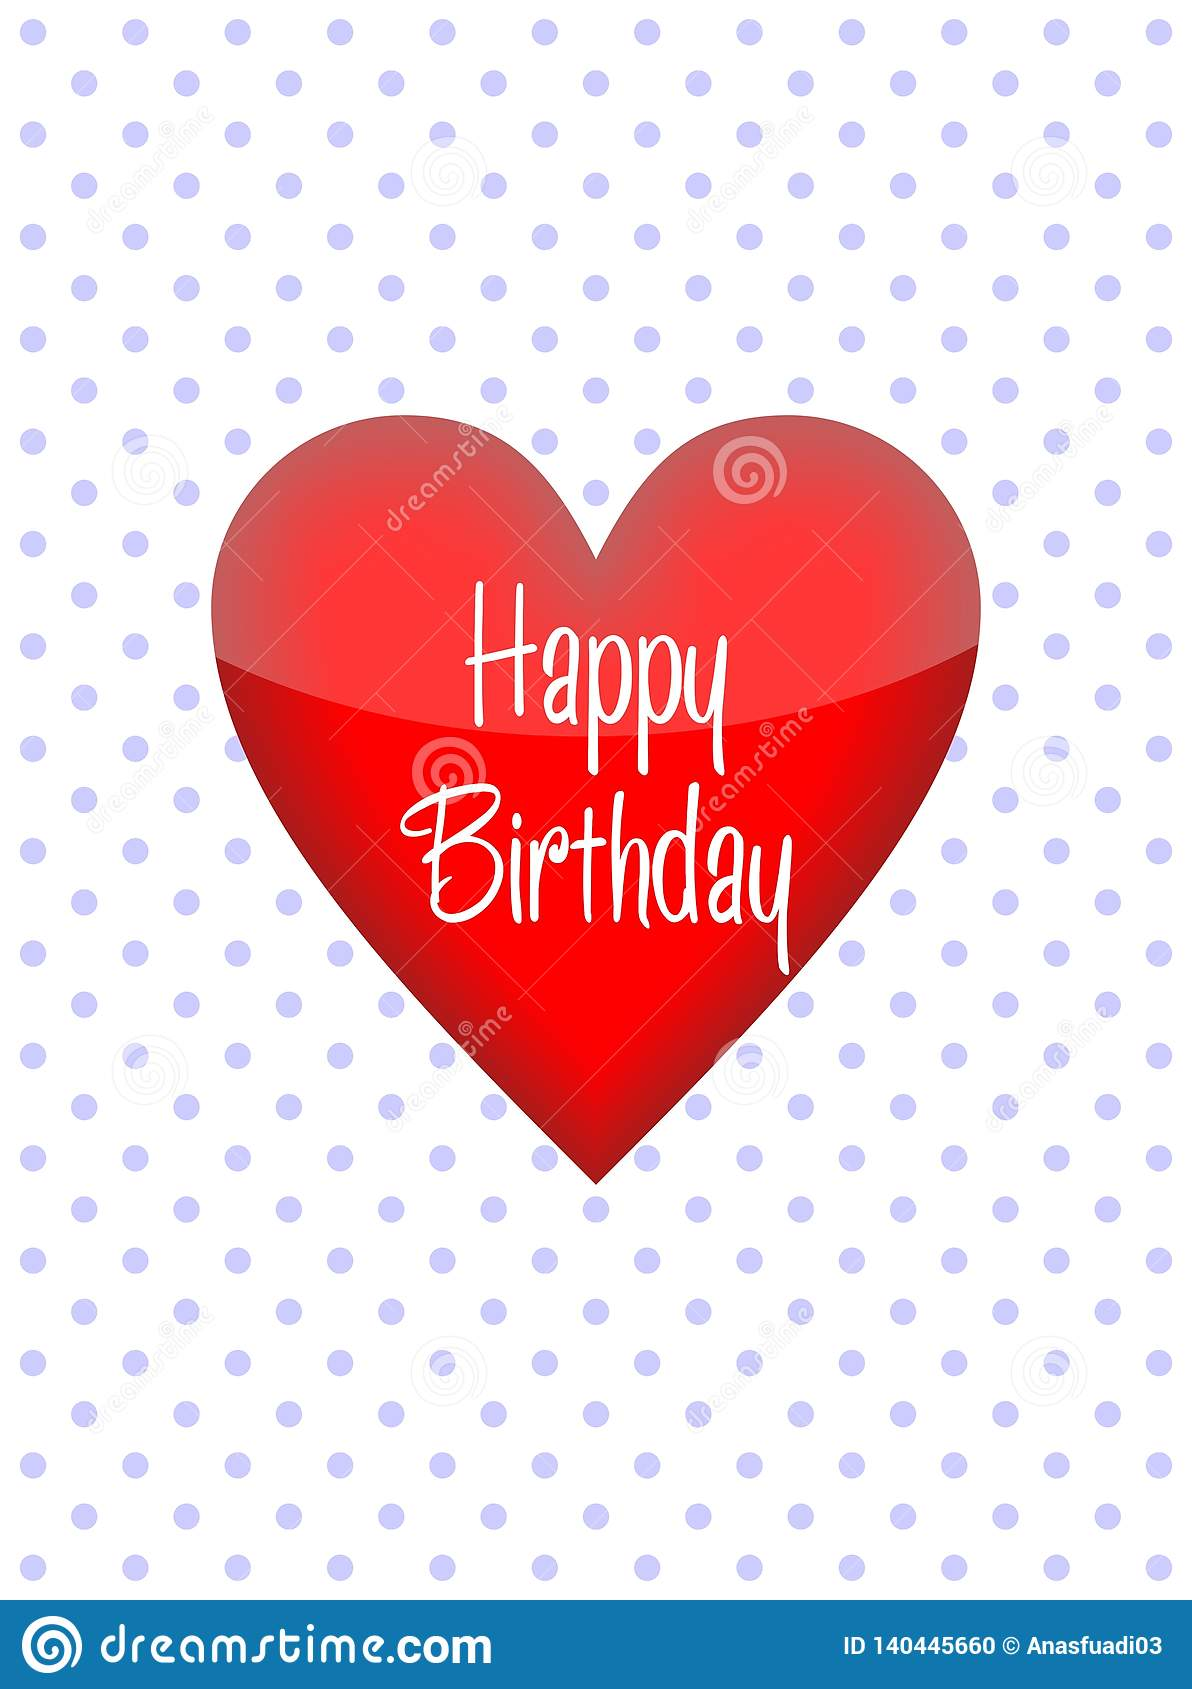 Simple Birthday Greeting Card A Symbol Of Love Design For Print Greetings Shirt Banner Poster Happy With